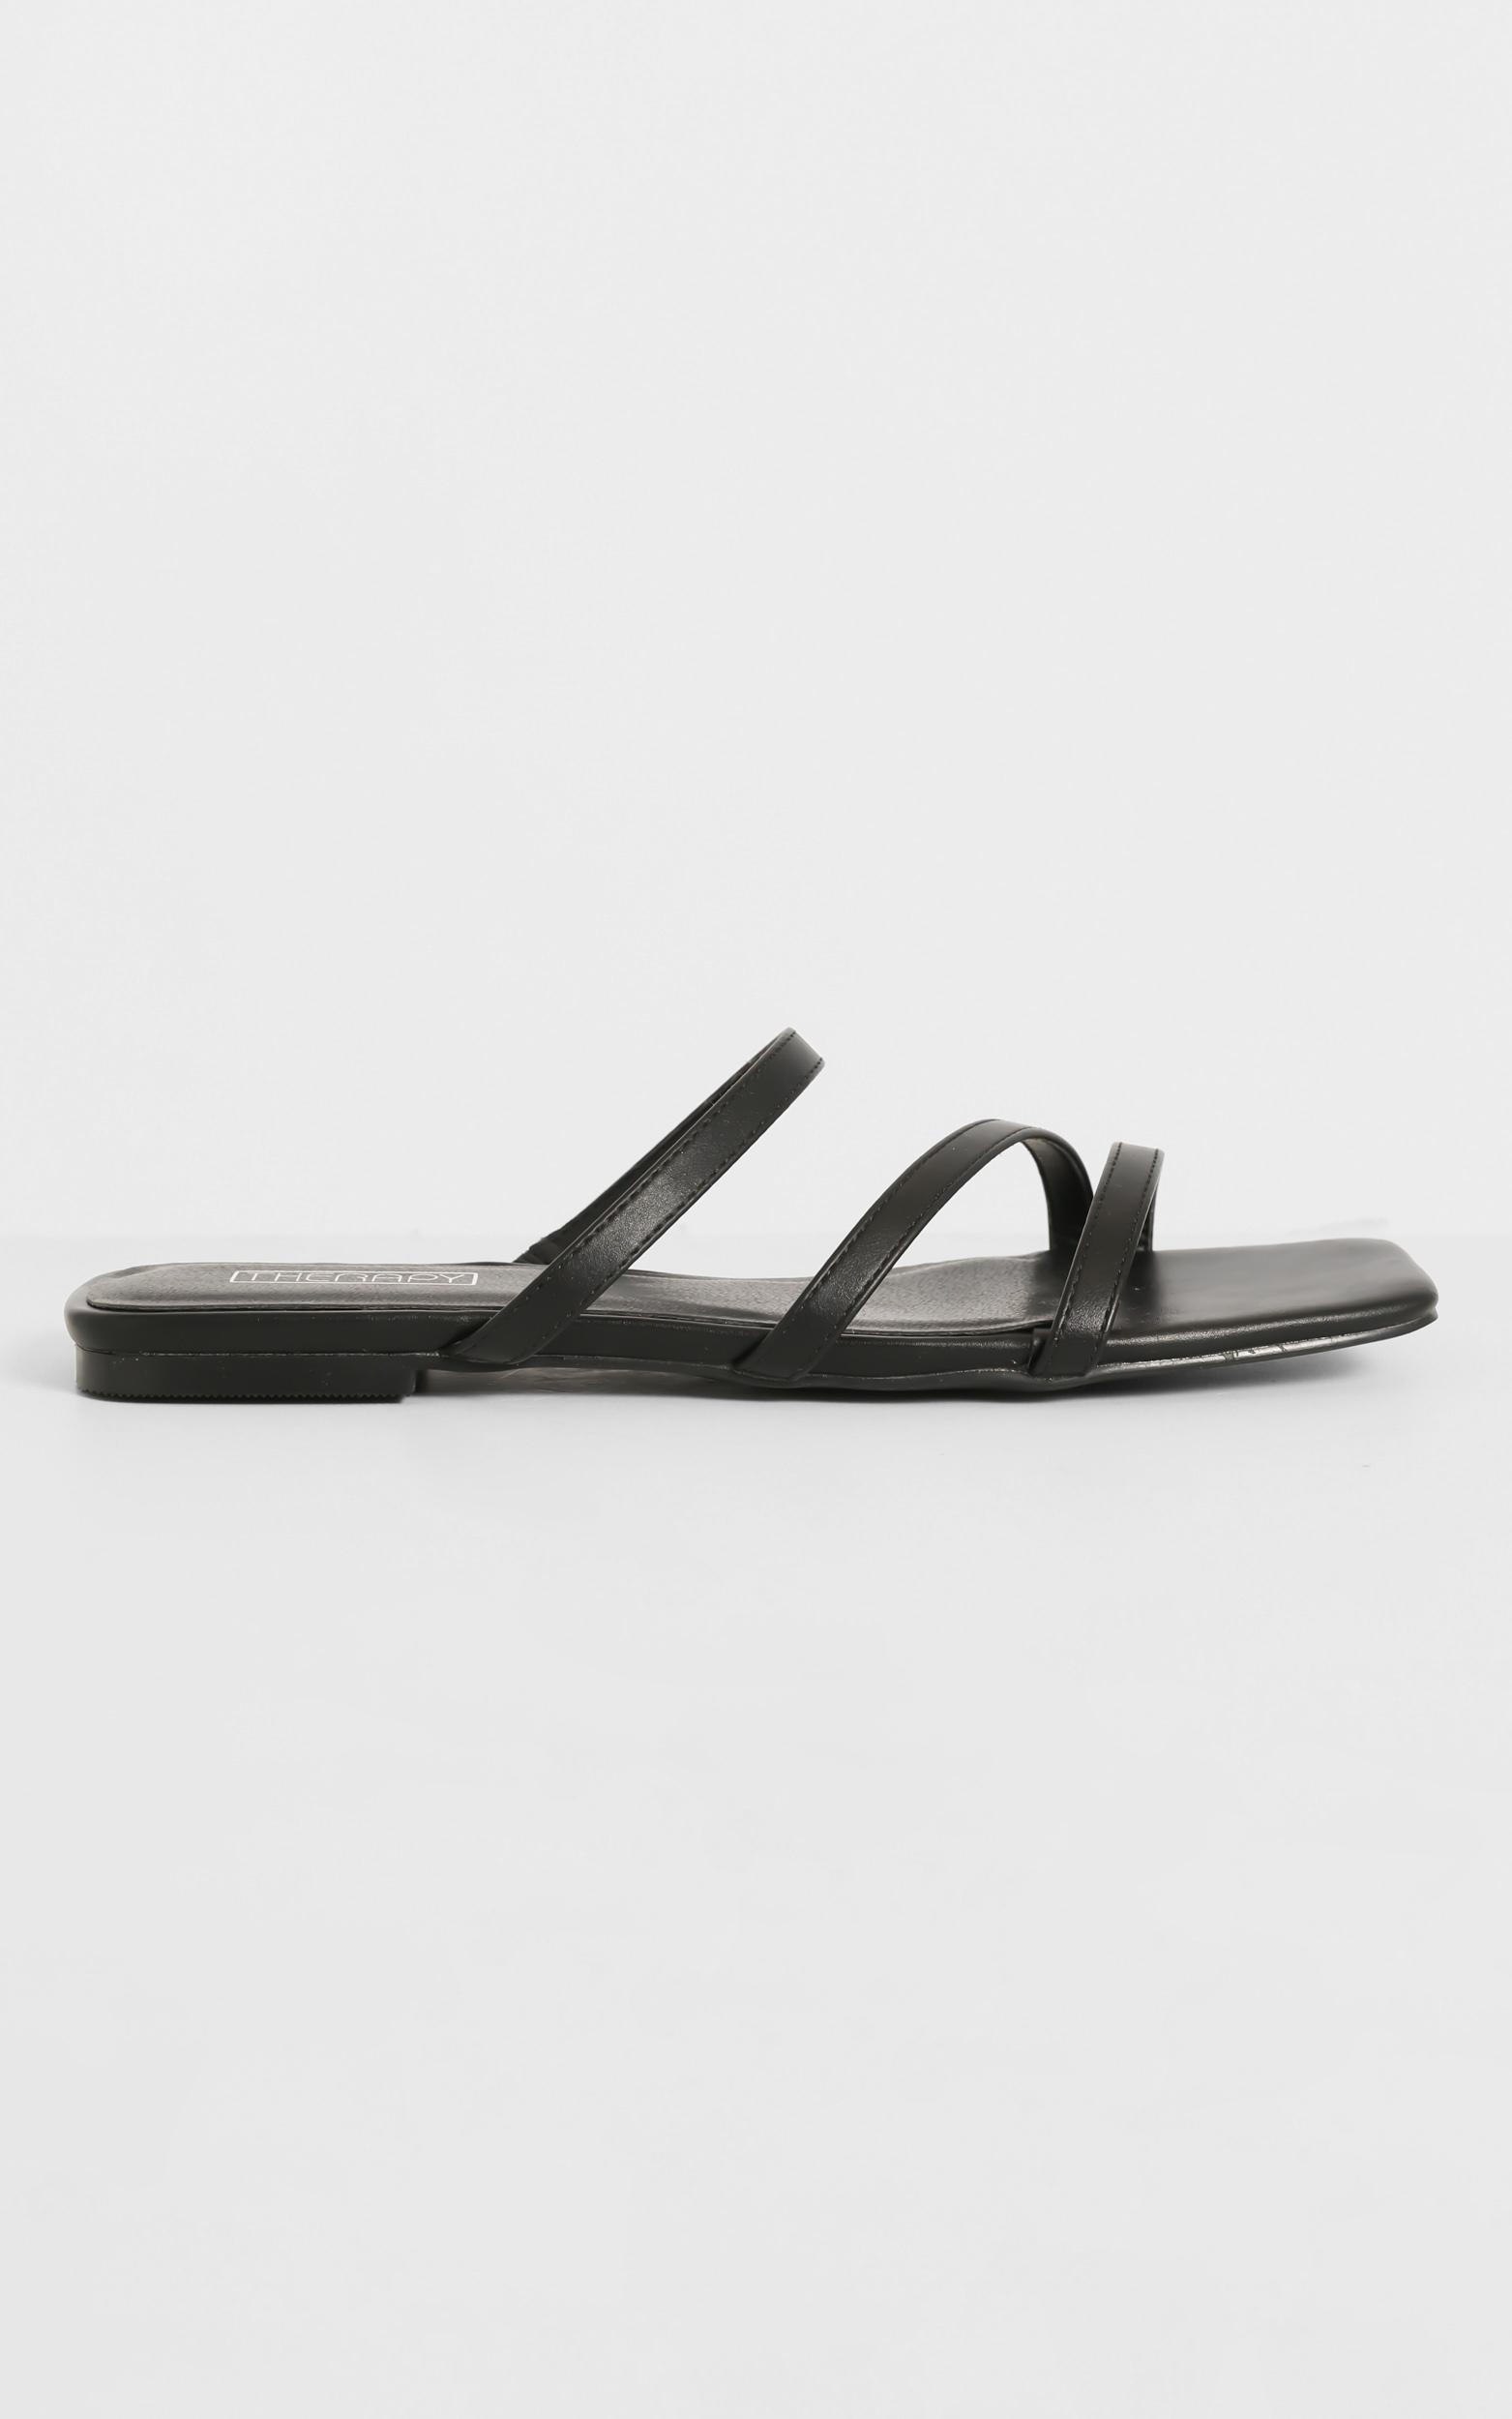 Therapy - Garza Sandals in Black - 5, Black, hi-res image number null